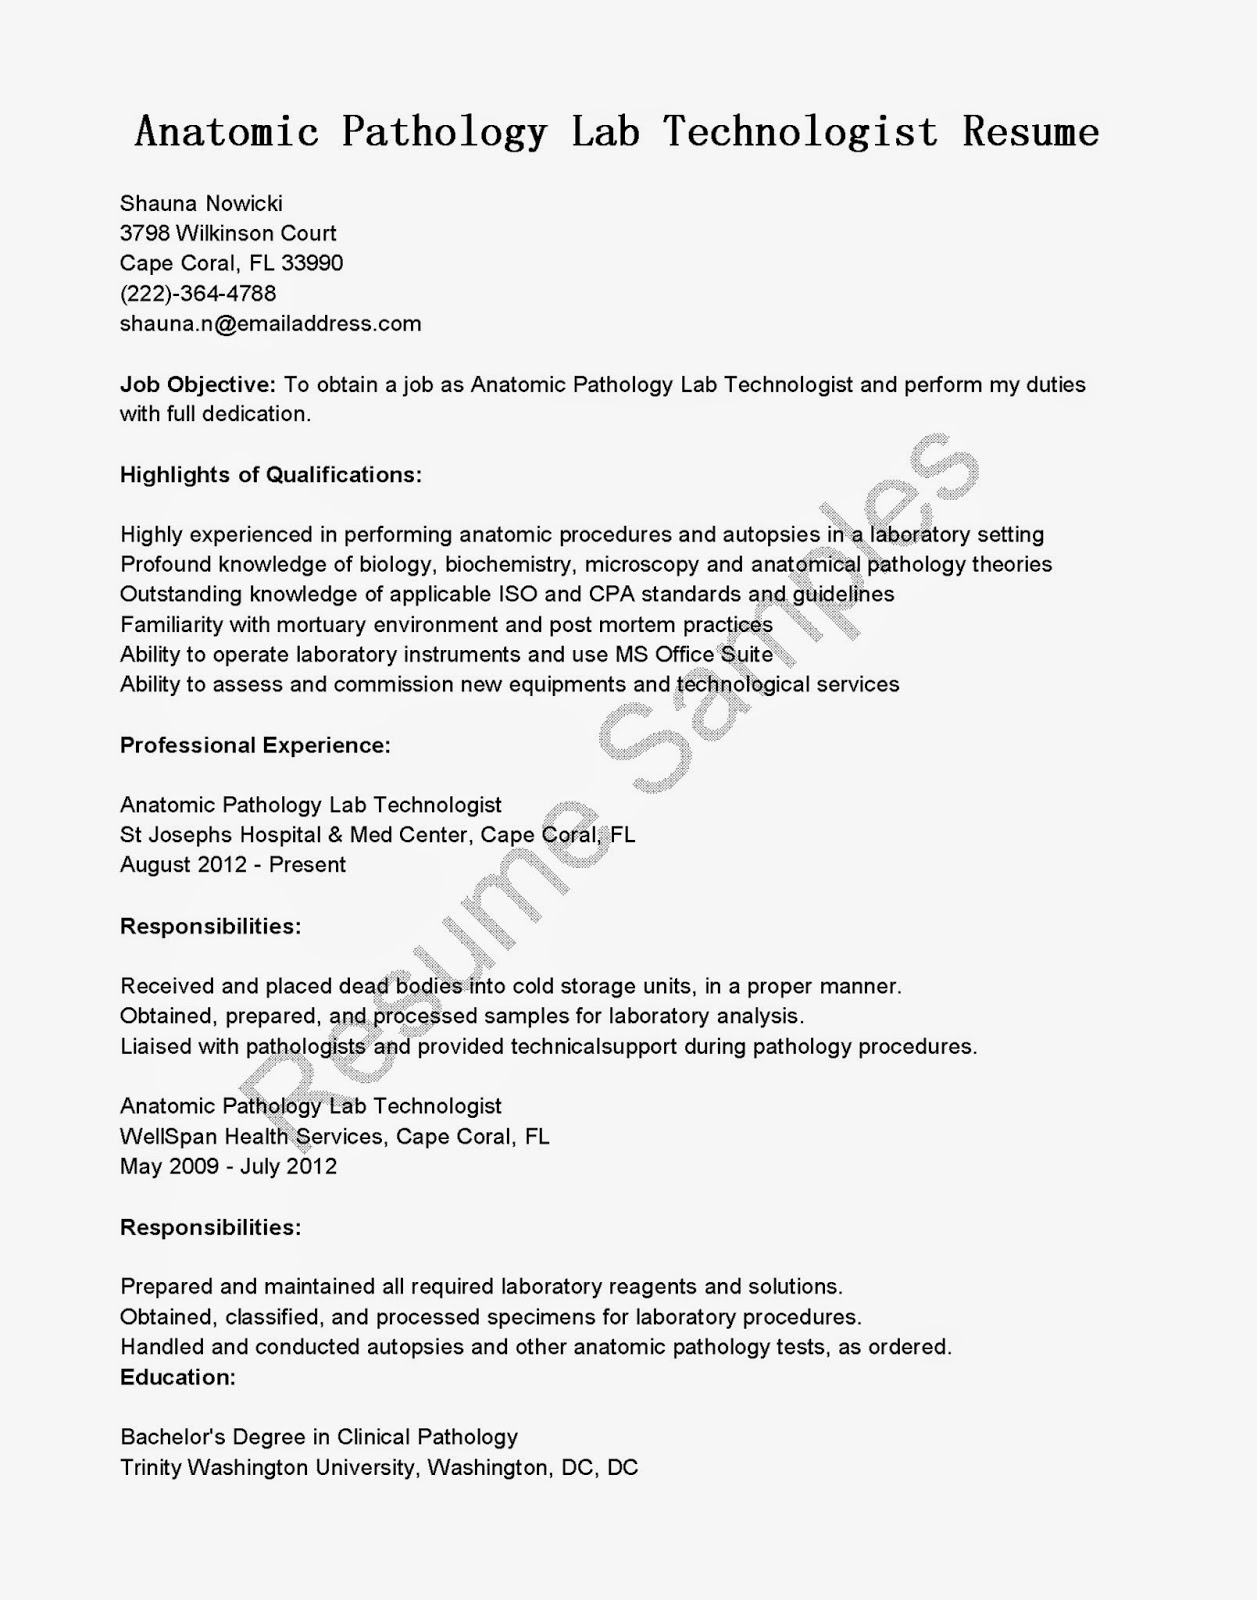 Pretty 1 2 3 Nu Kapitel Resume Tiny 1 Year Experience Java Resume Format Flat 11x17 Poster Template 16 Year Old Resumes Youthful 2 Inch Hexagon Template Orange2007 Word Templates Medical Laboratory Technician Resume Medical Laboratory Technician ..